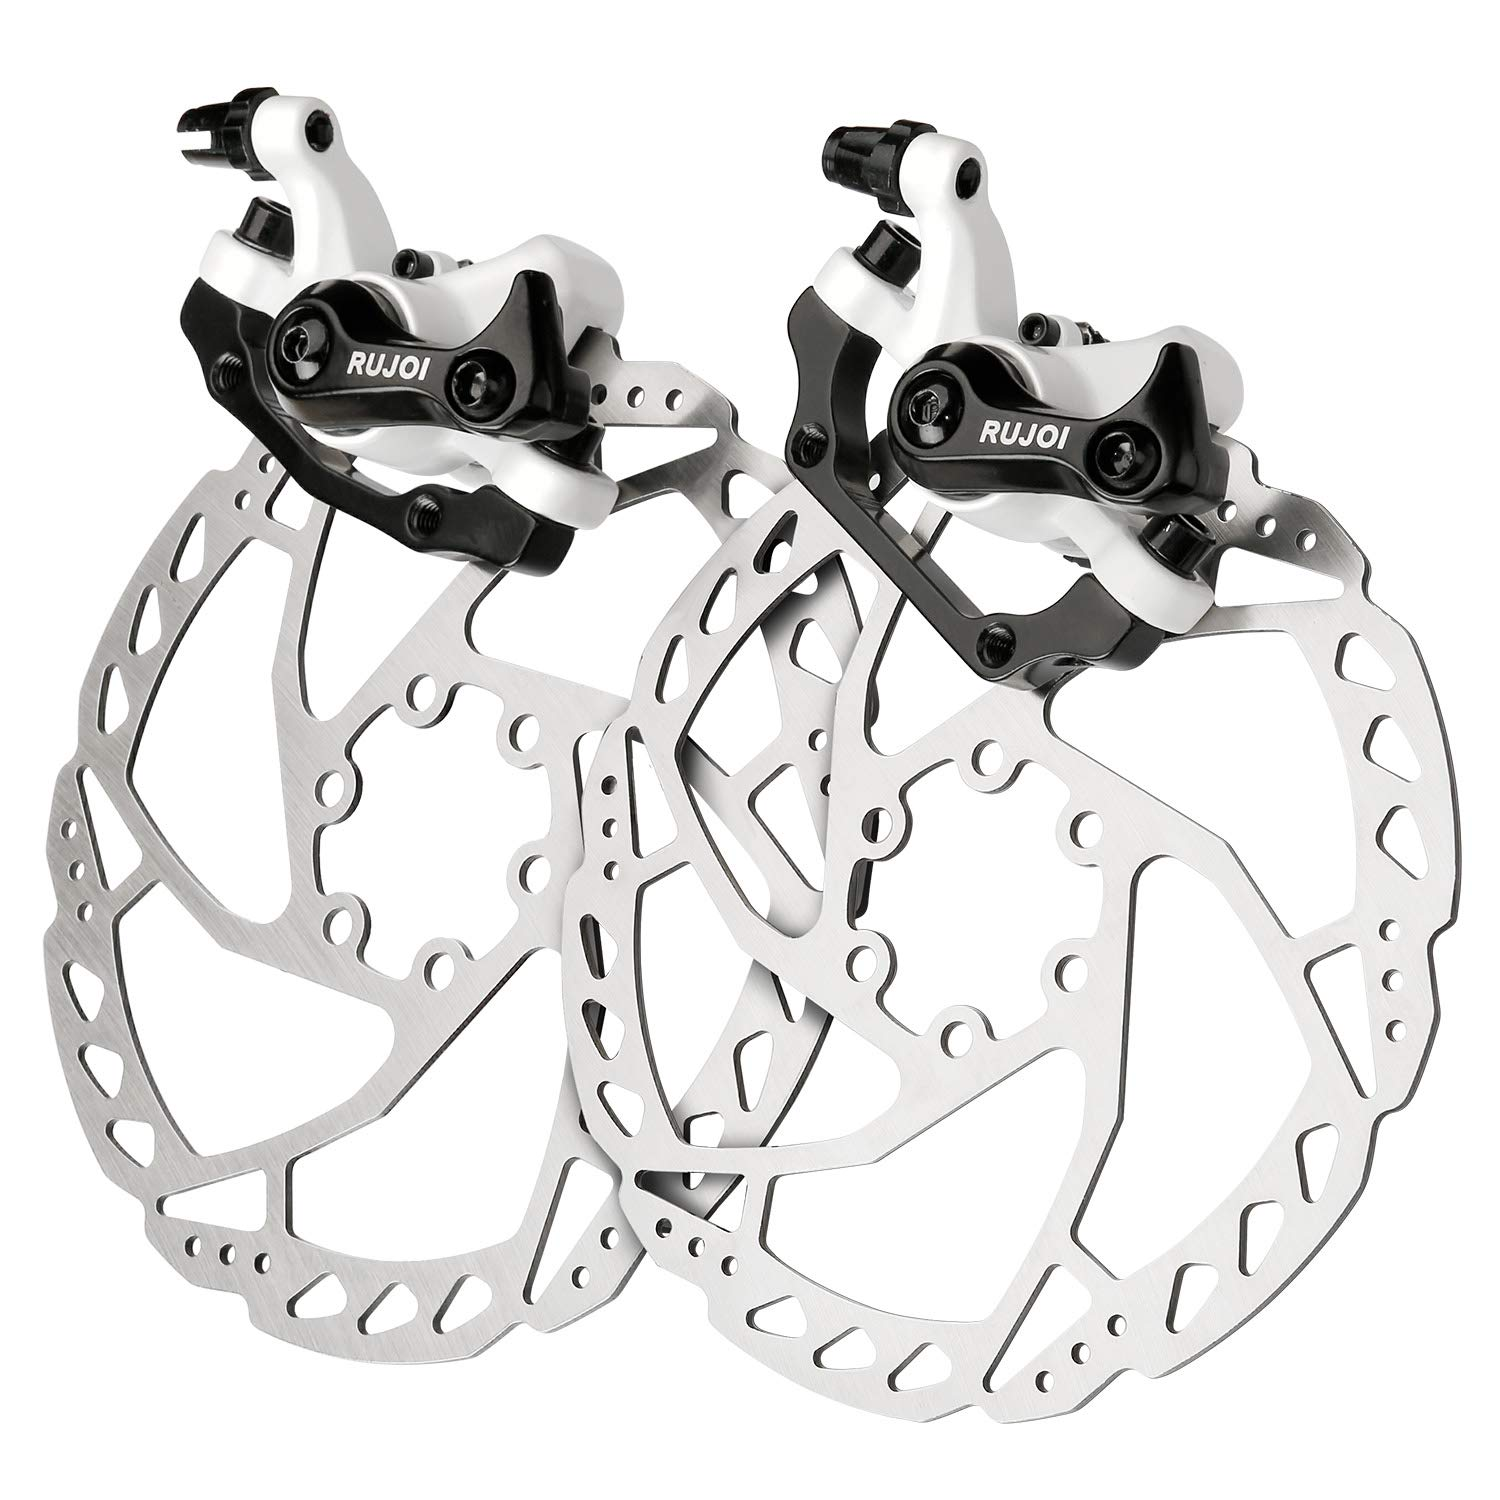 RUJOI Bike Disc Brake Kit, Aluminum Front and Rear Caliper, 160mm Rotor, Mechanic Tool-Free Pad Adjuster for Road Bike, Mountain Bike White (2 Sets) by RUJOI